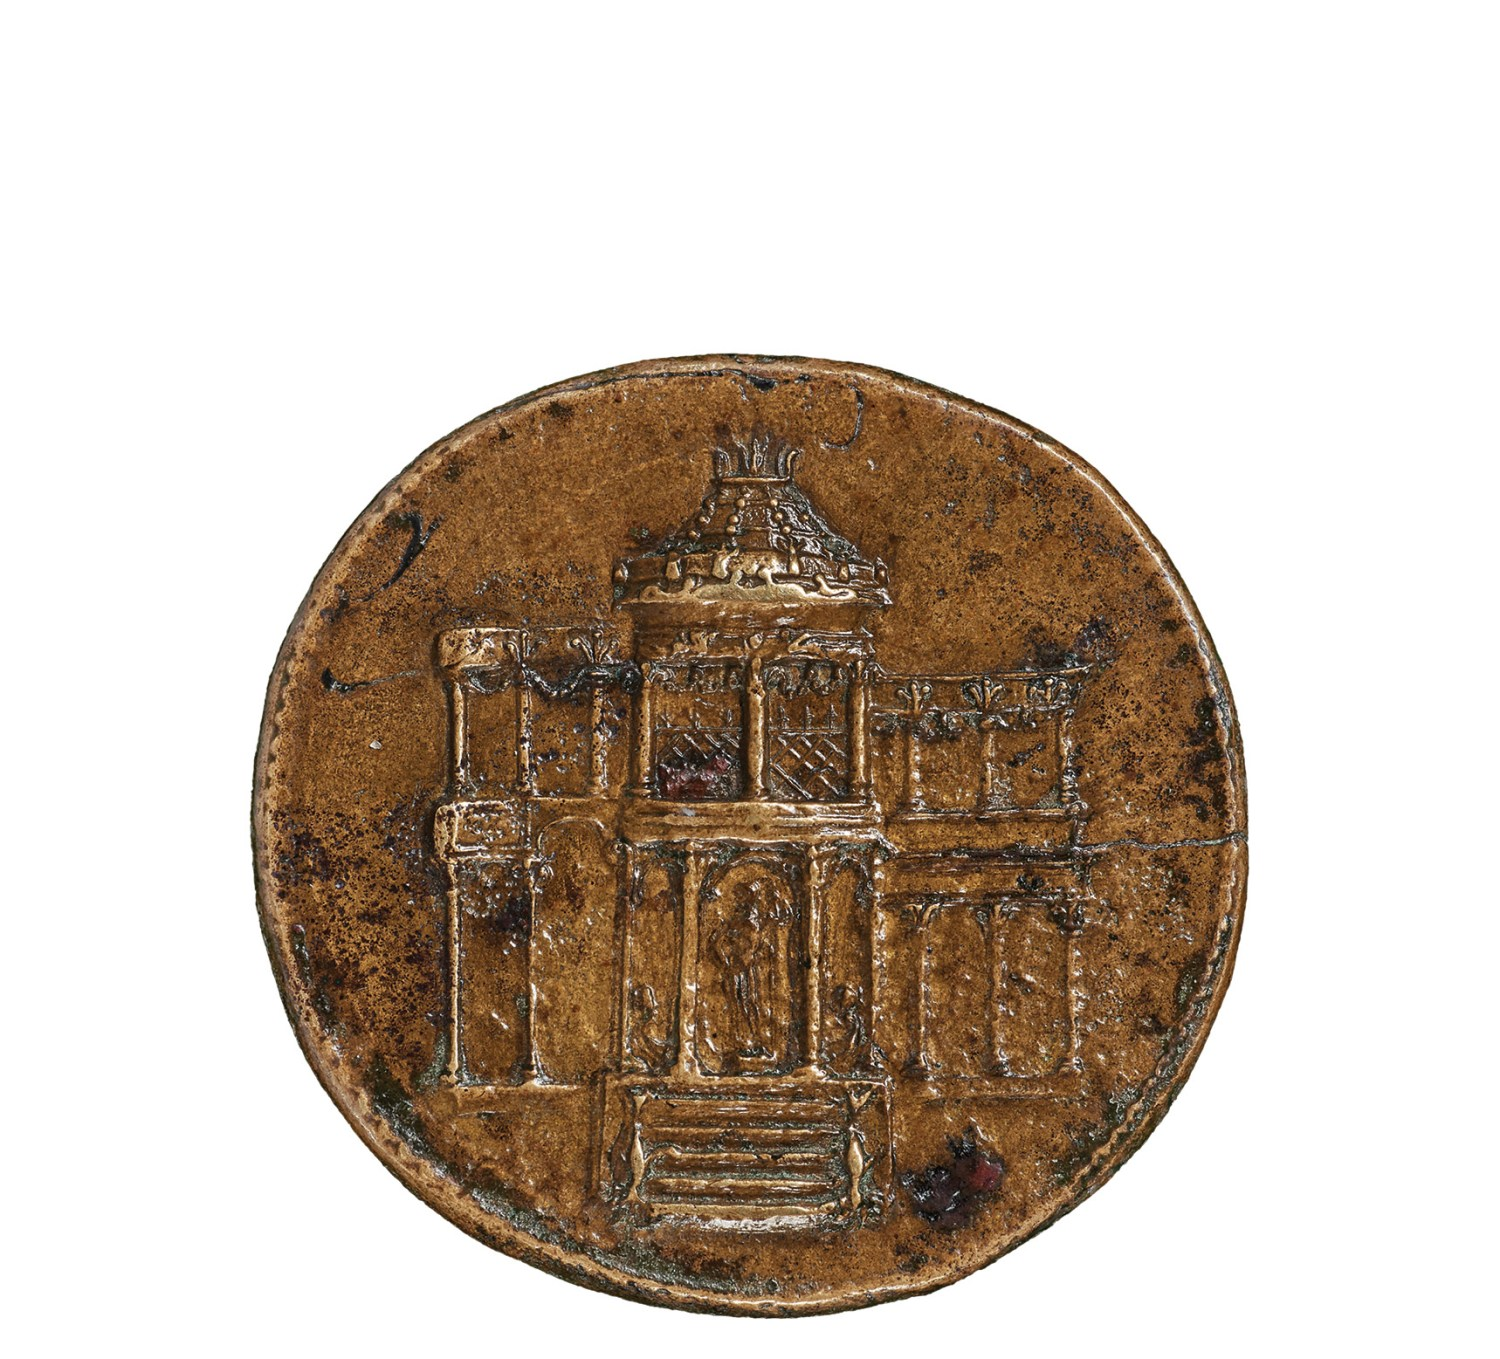 above left Dupondius minted in Rome, showing the great market, the Macellum Magnum. Copper alloy, AD 63. Size: 17.7g in